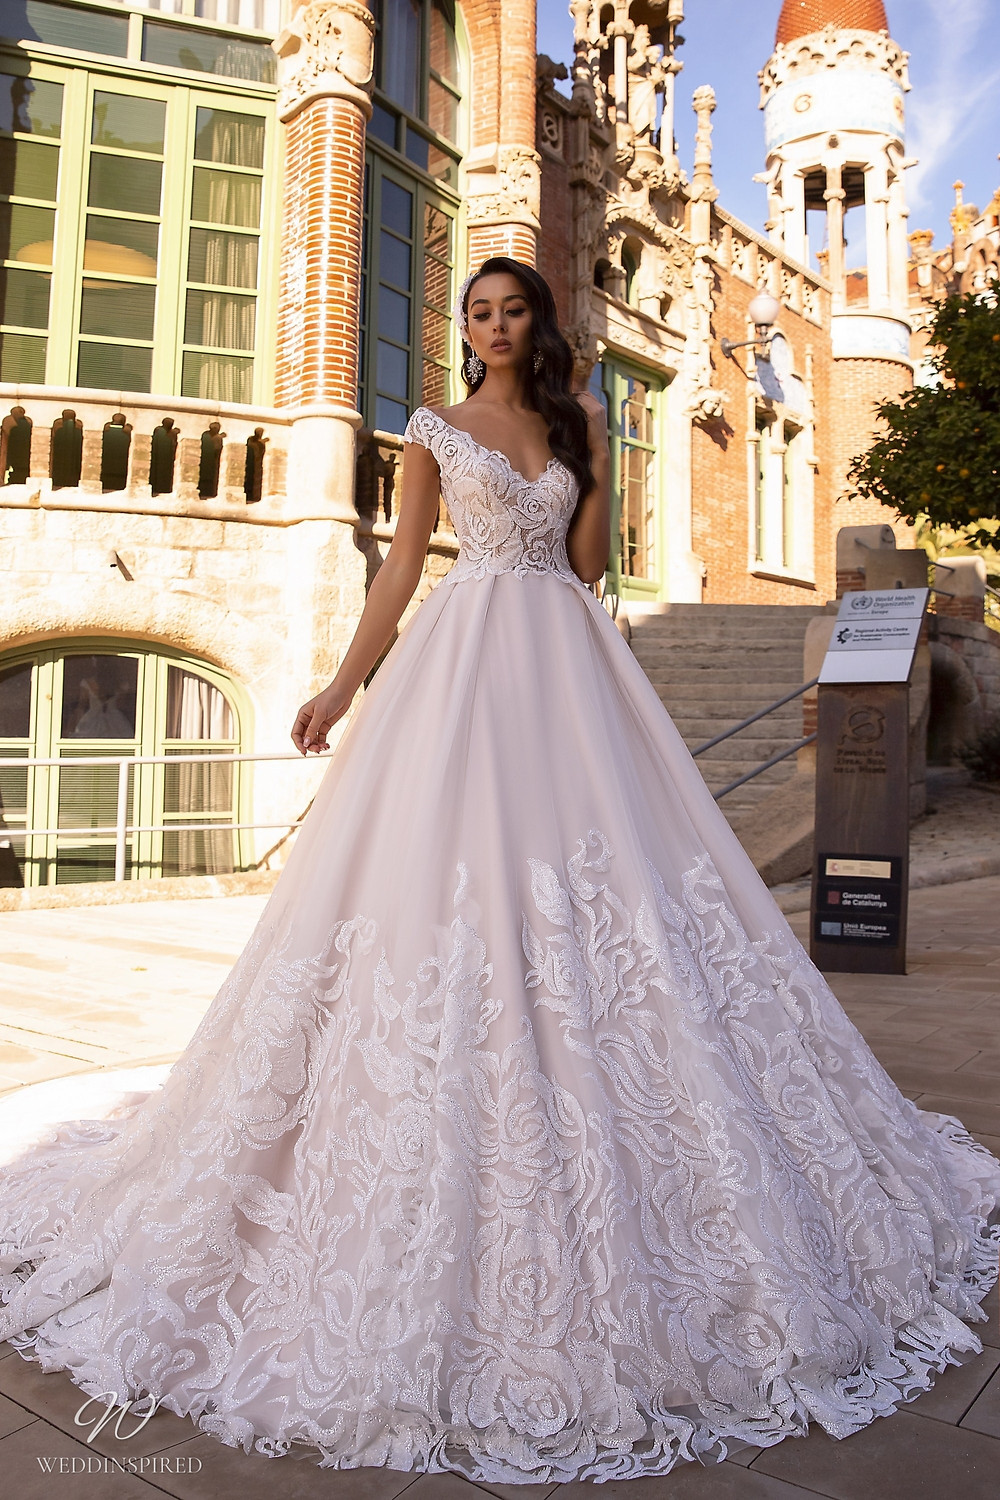 A Maks Mariano off the shoulder blush princess ball gown wedding dress